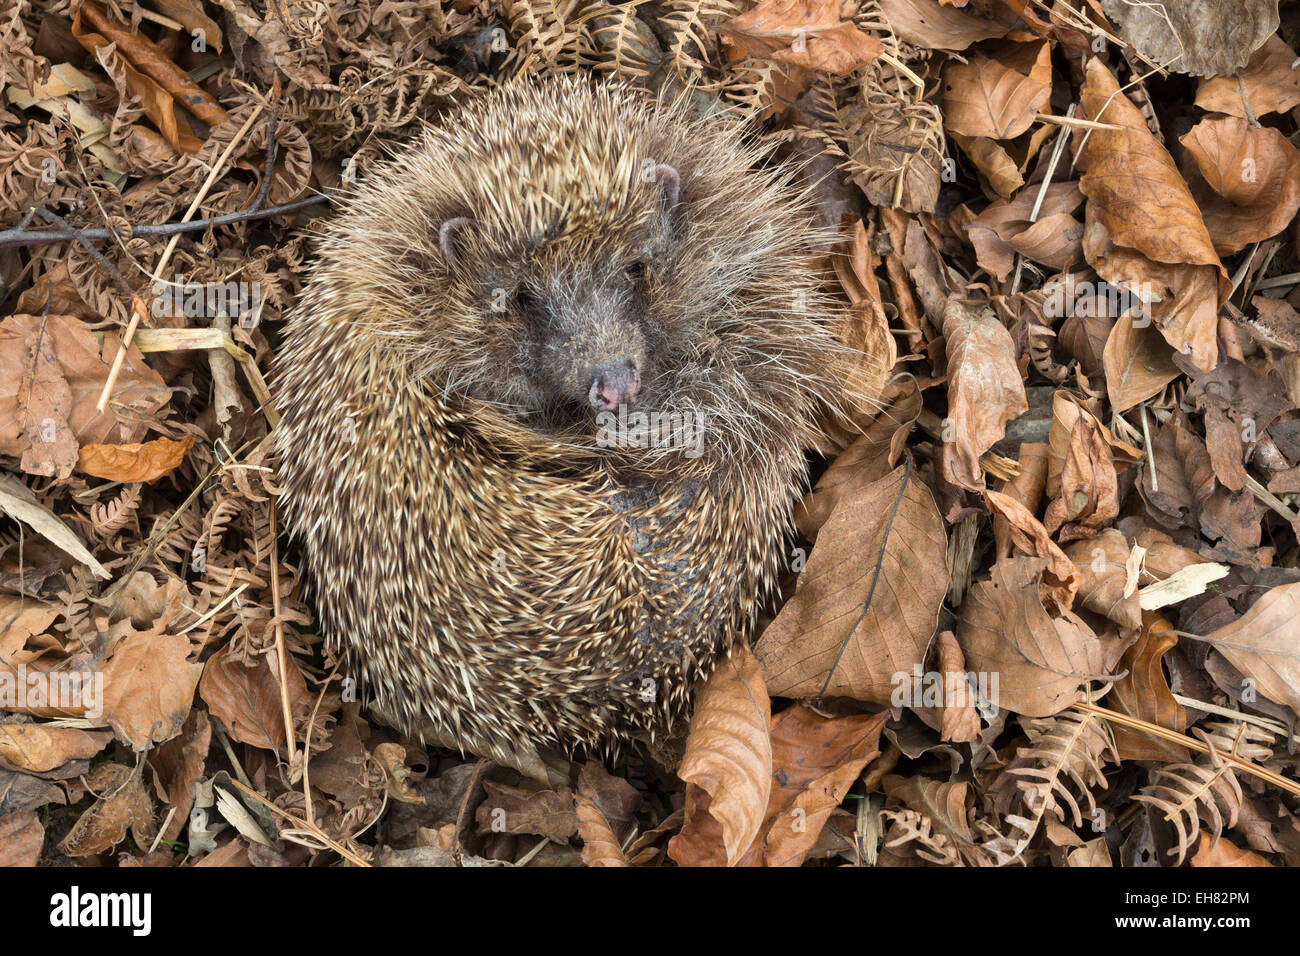 Hedgehog (Erinaceus europaeus) in autumn leaves, captive, United Kingdom, Europe - Stock Image